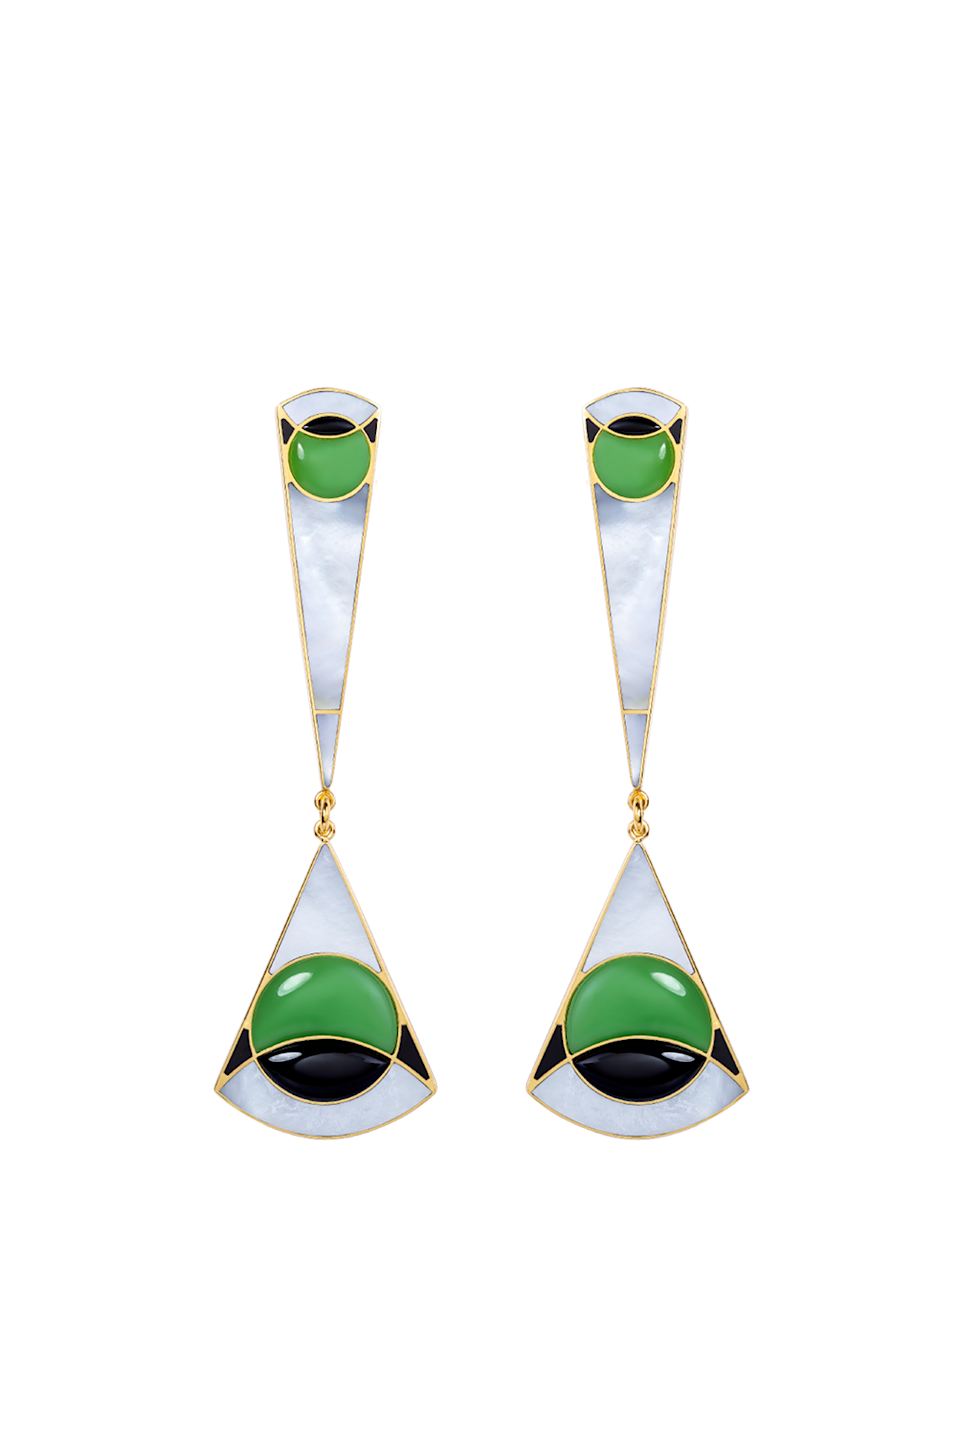 """<p><strong>Monica Sordo</strong></p><p>maison-de-mode.com</p><p><strong>$785.00</strong></p><p><a href=""""https://maison-de-mode.com/products/ennio-earrings-long"""" rel=""""nofollow noopener"""" target=""""_blank"""" data-ylk=""""slk:Shop Now"""" class=""""link rapid-noclick-resp"""">Shop Now</a></p><p>As with all of Monica Sordo's jewelry, these Art Deco-inspired Mother of Pearl, Lechuguita, and Black Onyx chandelier earrings are handcrafted by local artisans in Lima, Peru. </p>"""